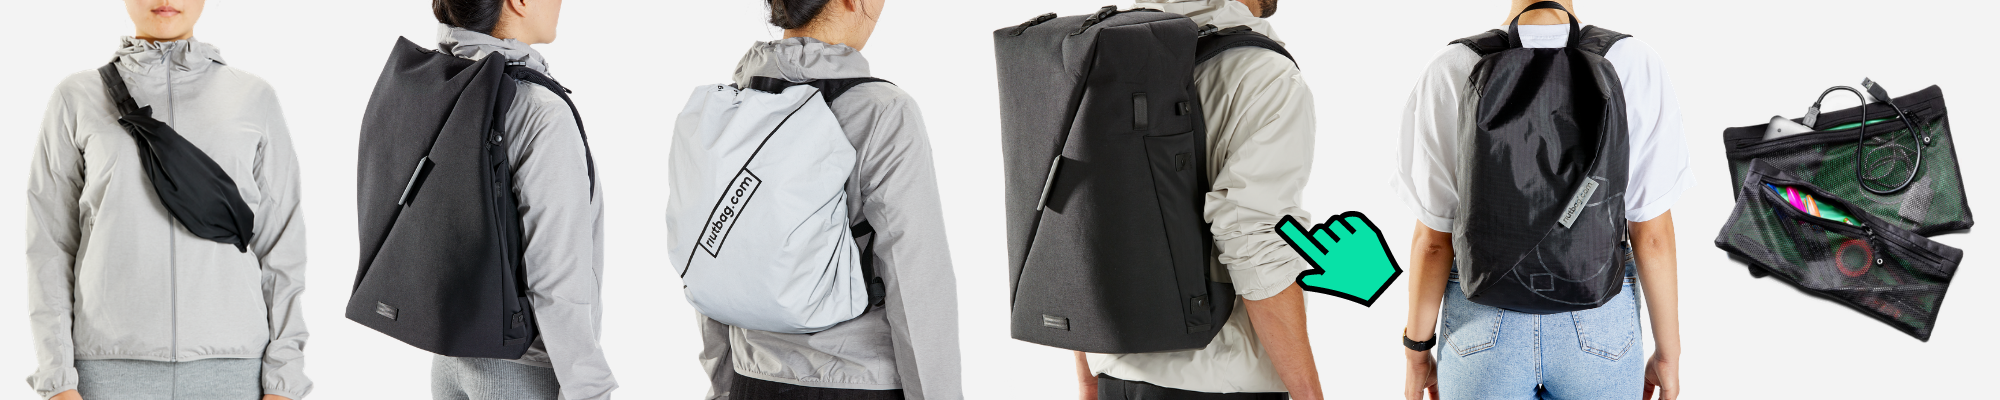 What should I look for in a laptop backpack? RiutBag